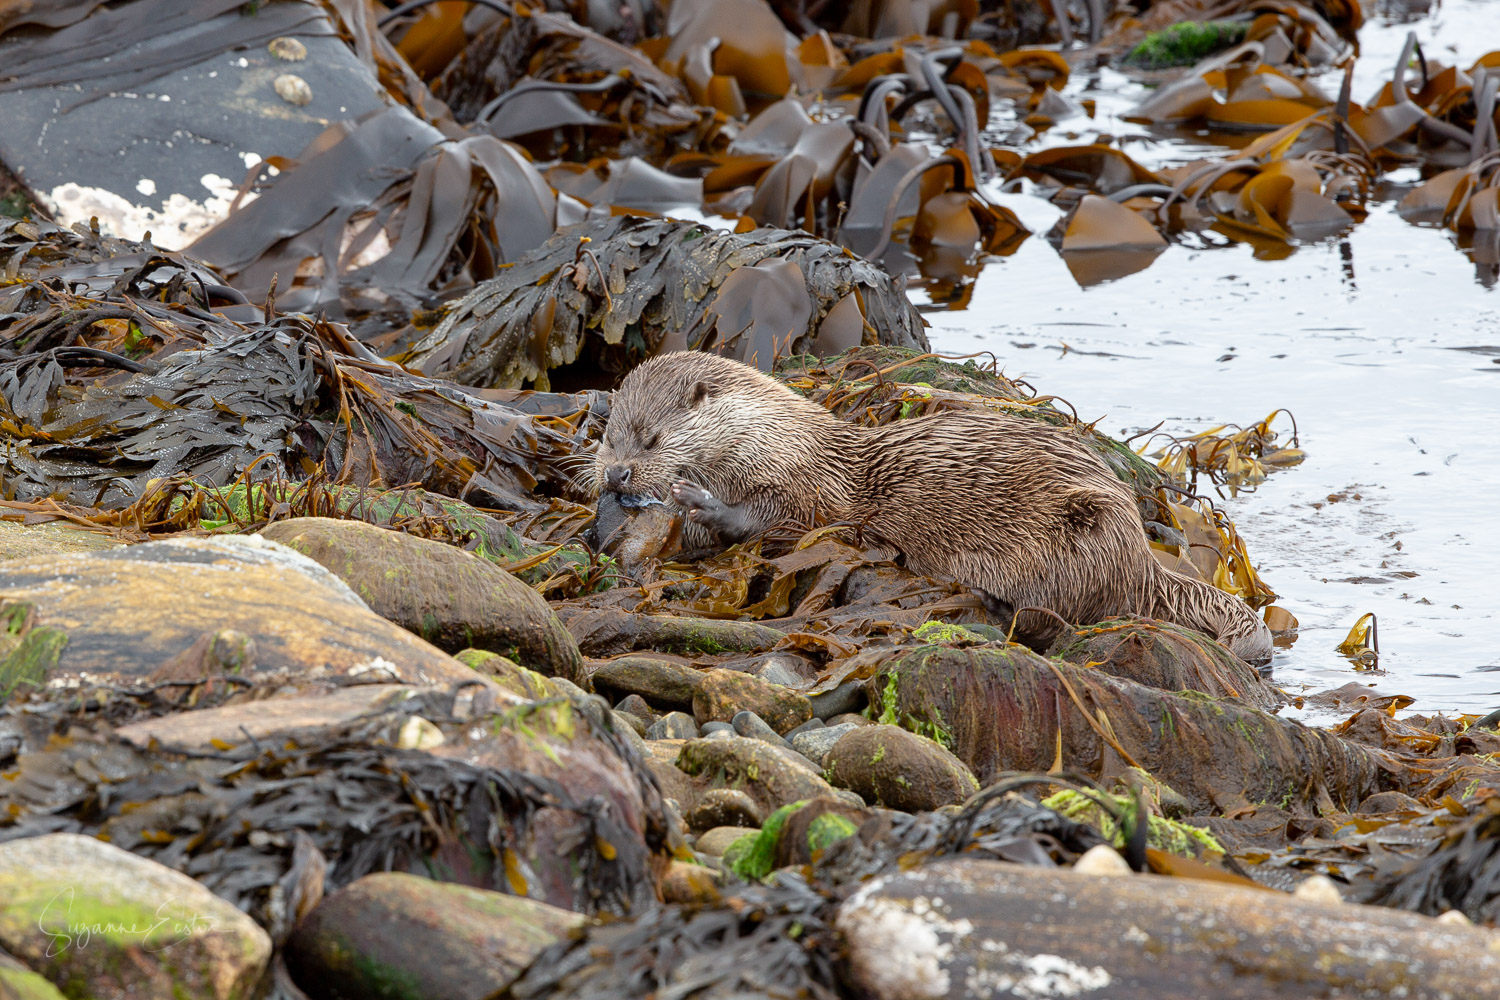 A female otter eating a lumpshucker in shetland